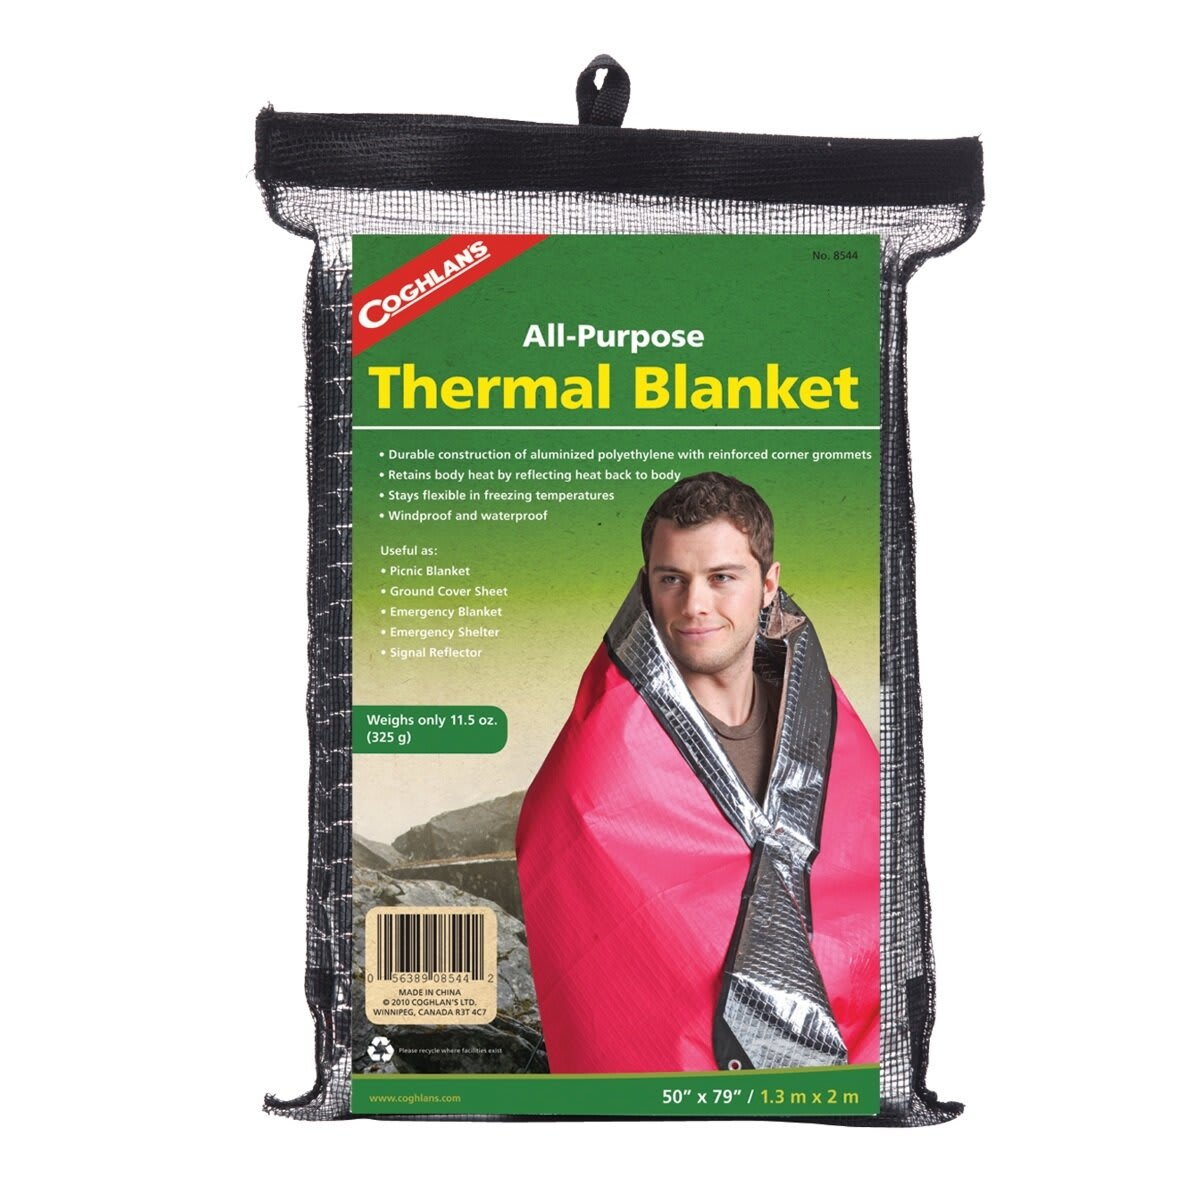 Coghlan's Thermal Emergency Blanket